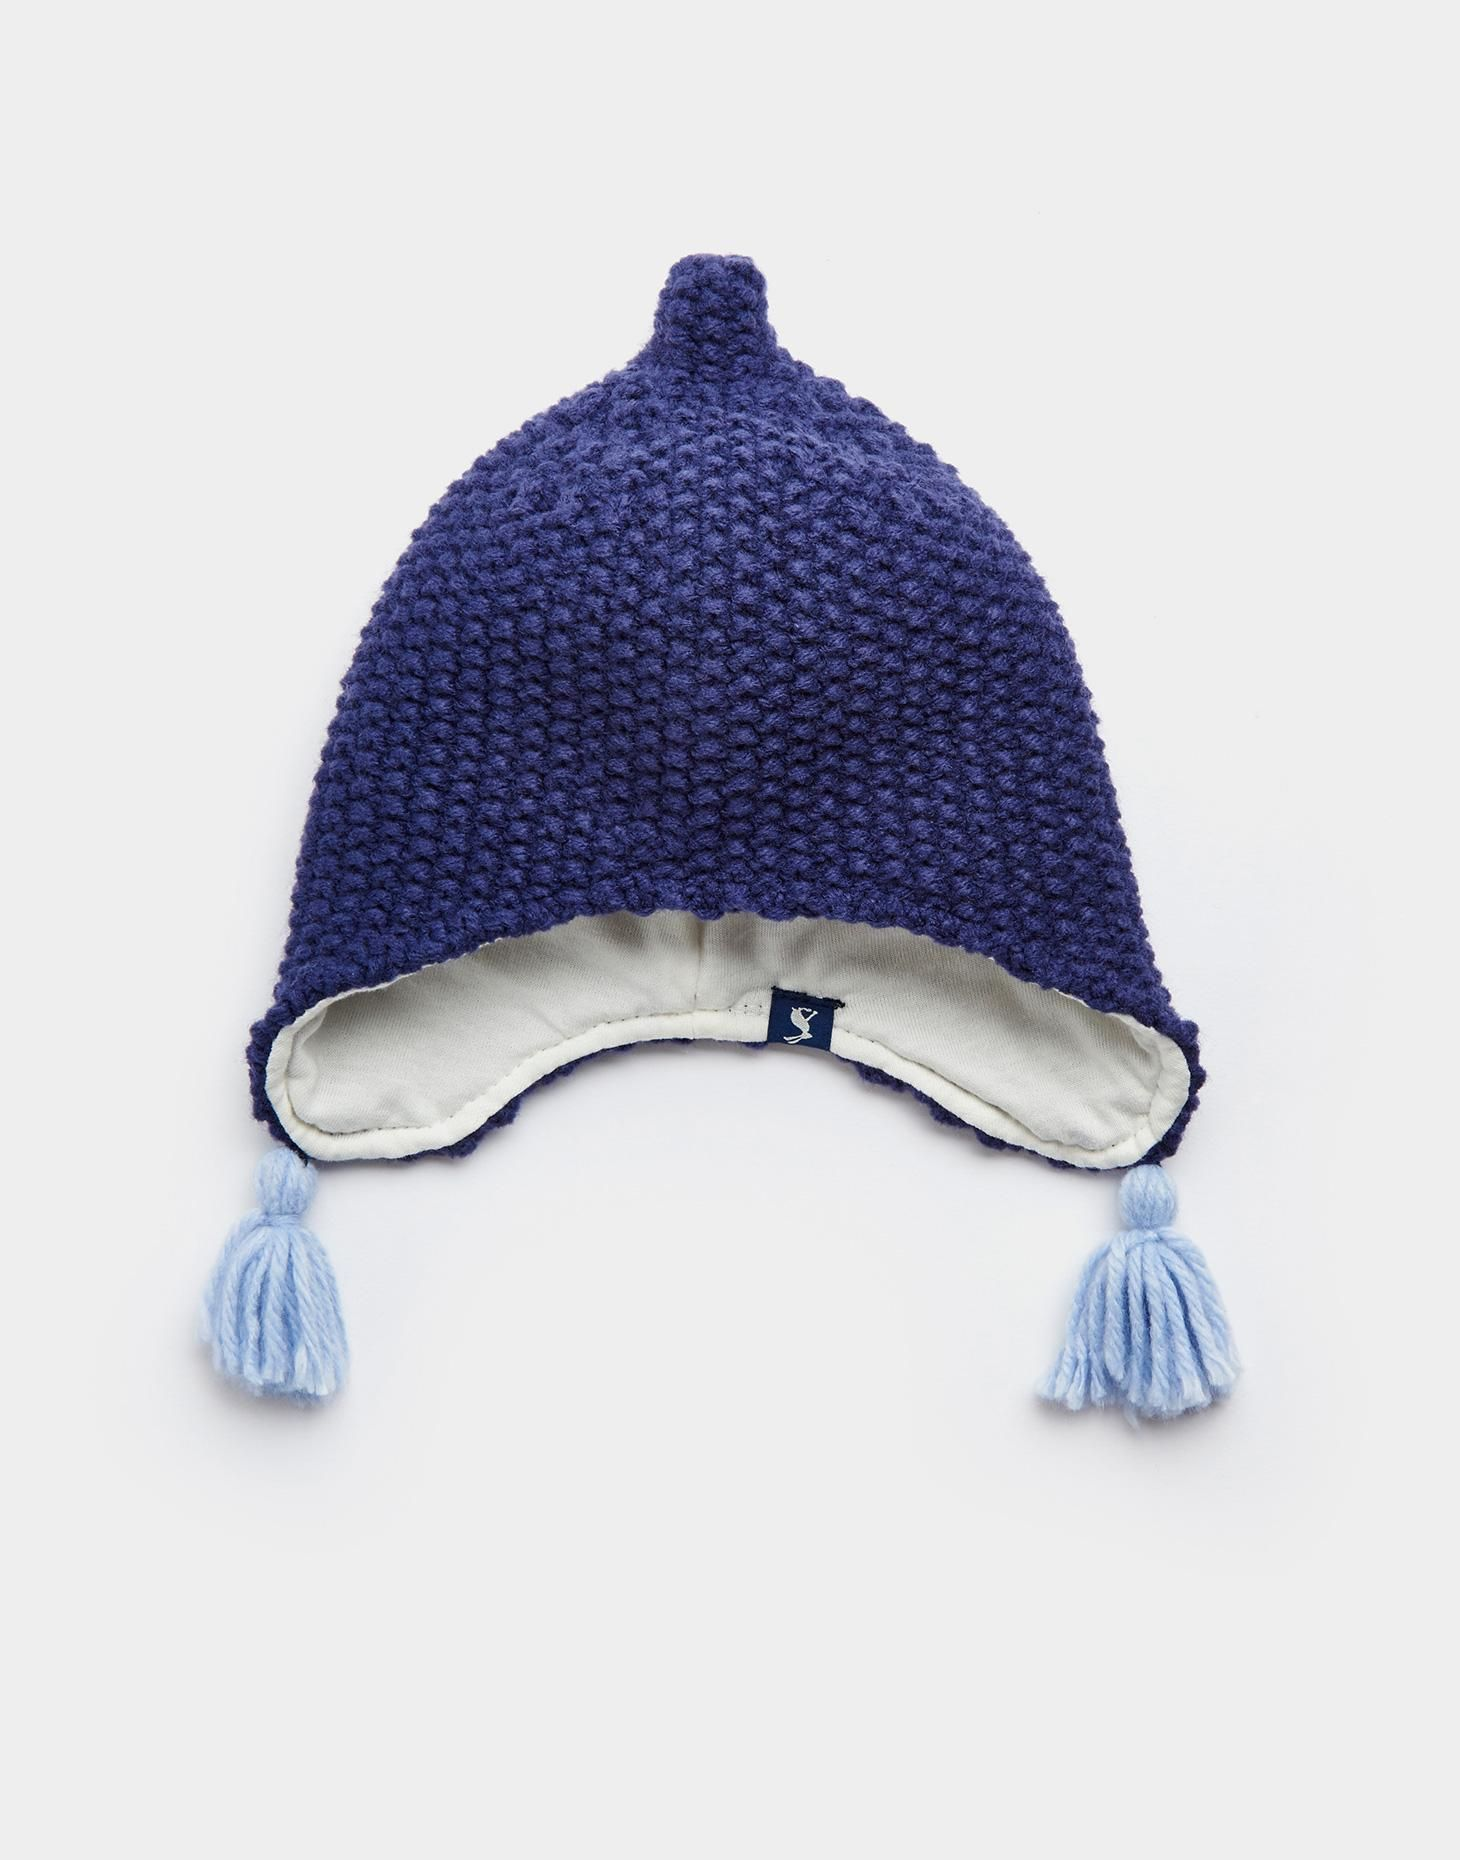 Softy French Navy Knitted Hat Joules Uk Knitted Hats Baby Boy Outfits Baby Warmer [ 1860 x 1460 Pixel ]